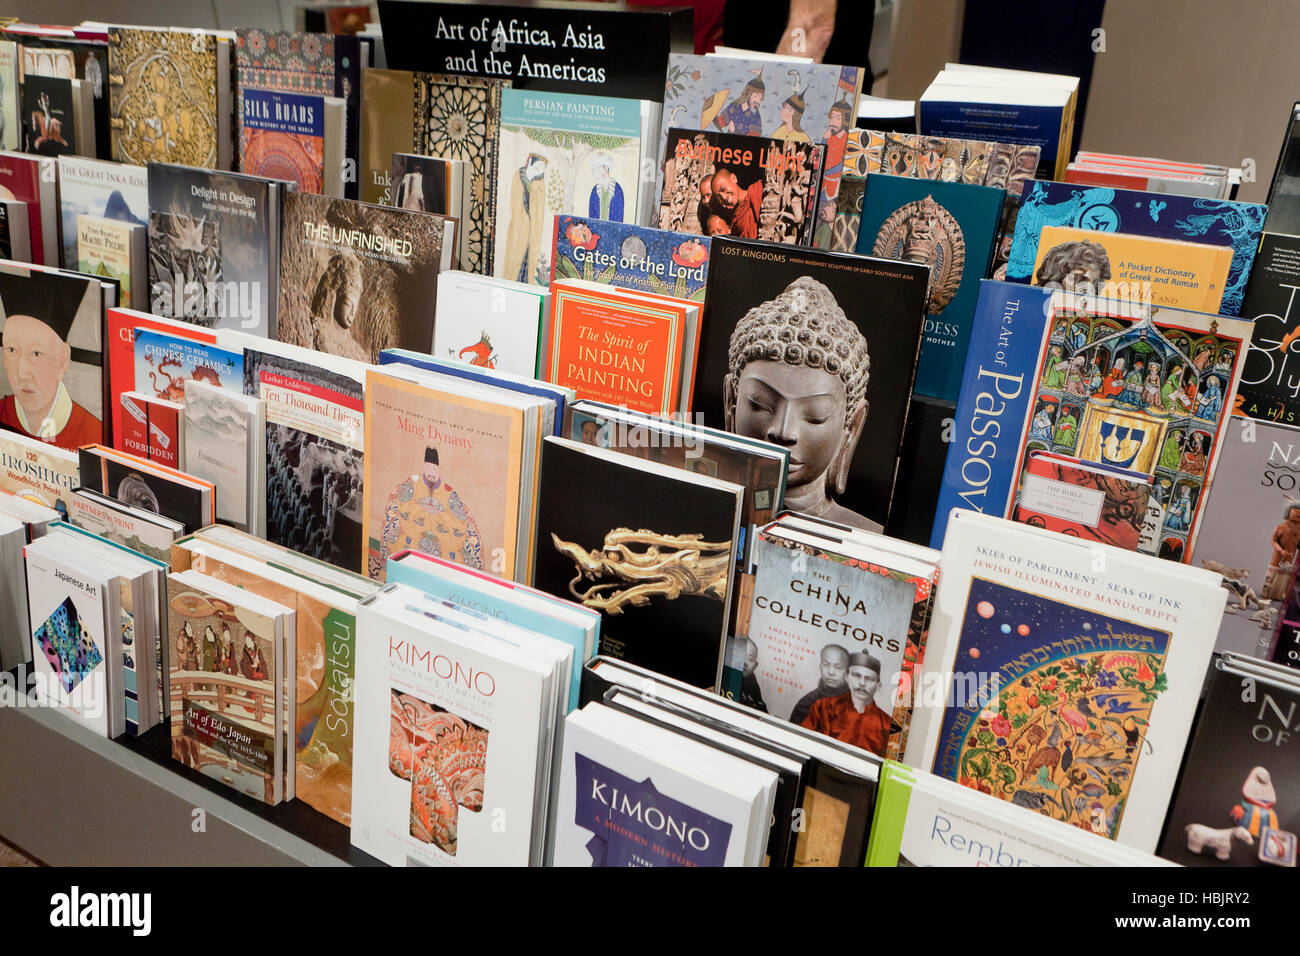 Asian art books section at bookstore - USA - Stock Image